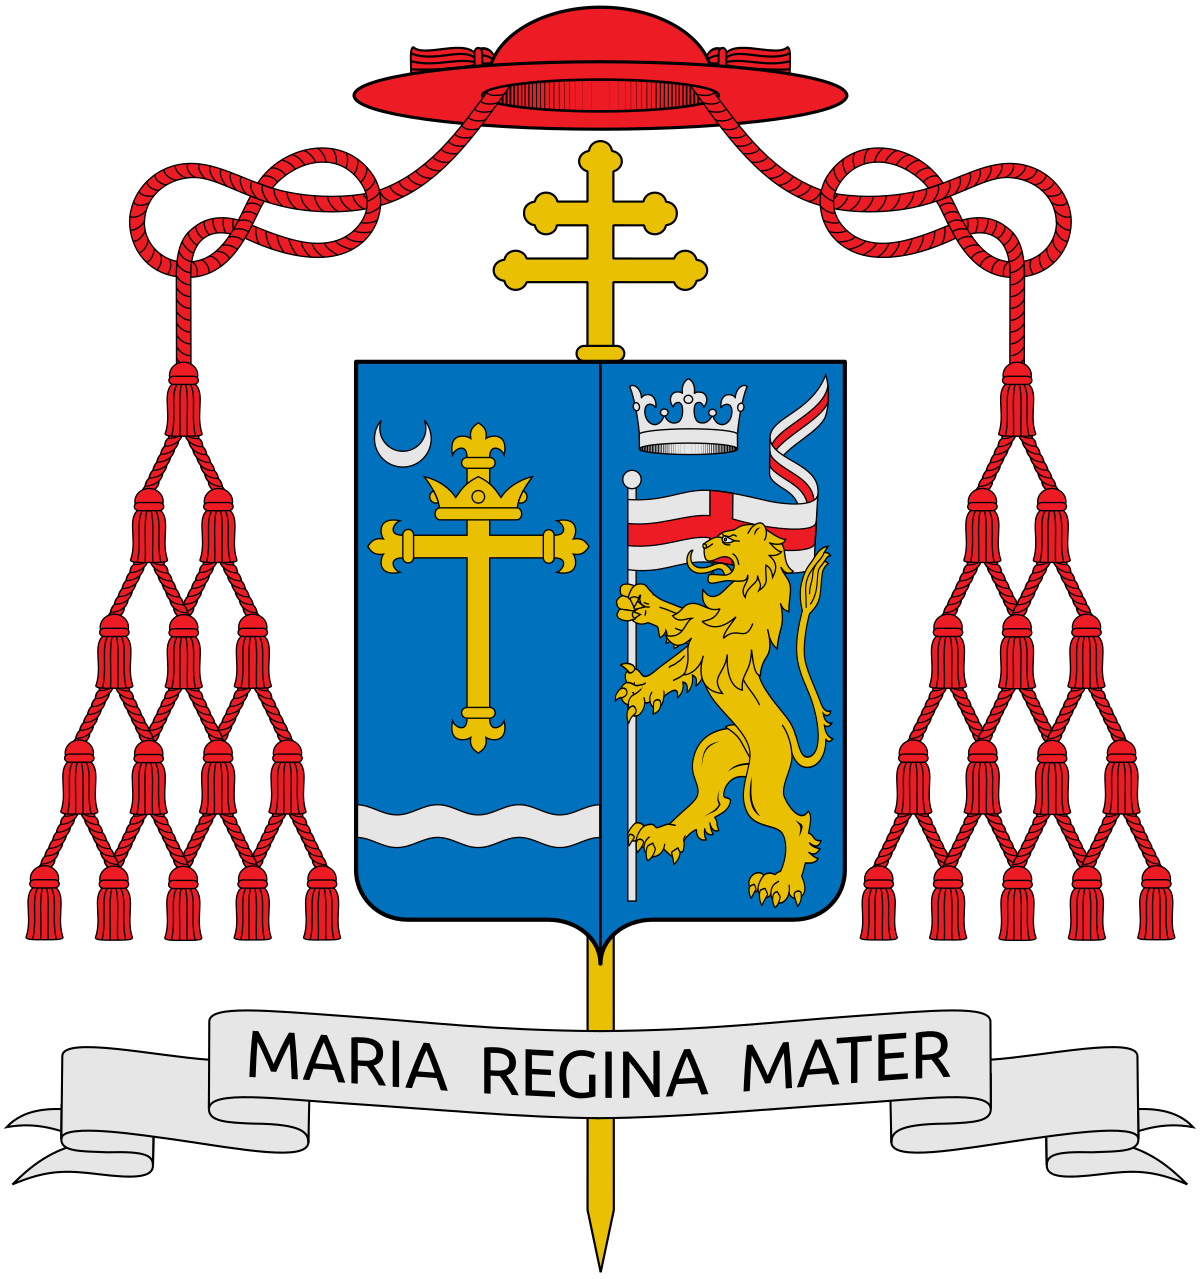 Pastor clipart cleric. John carberry wikipedia